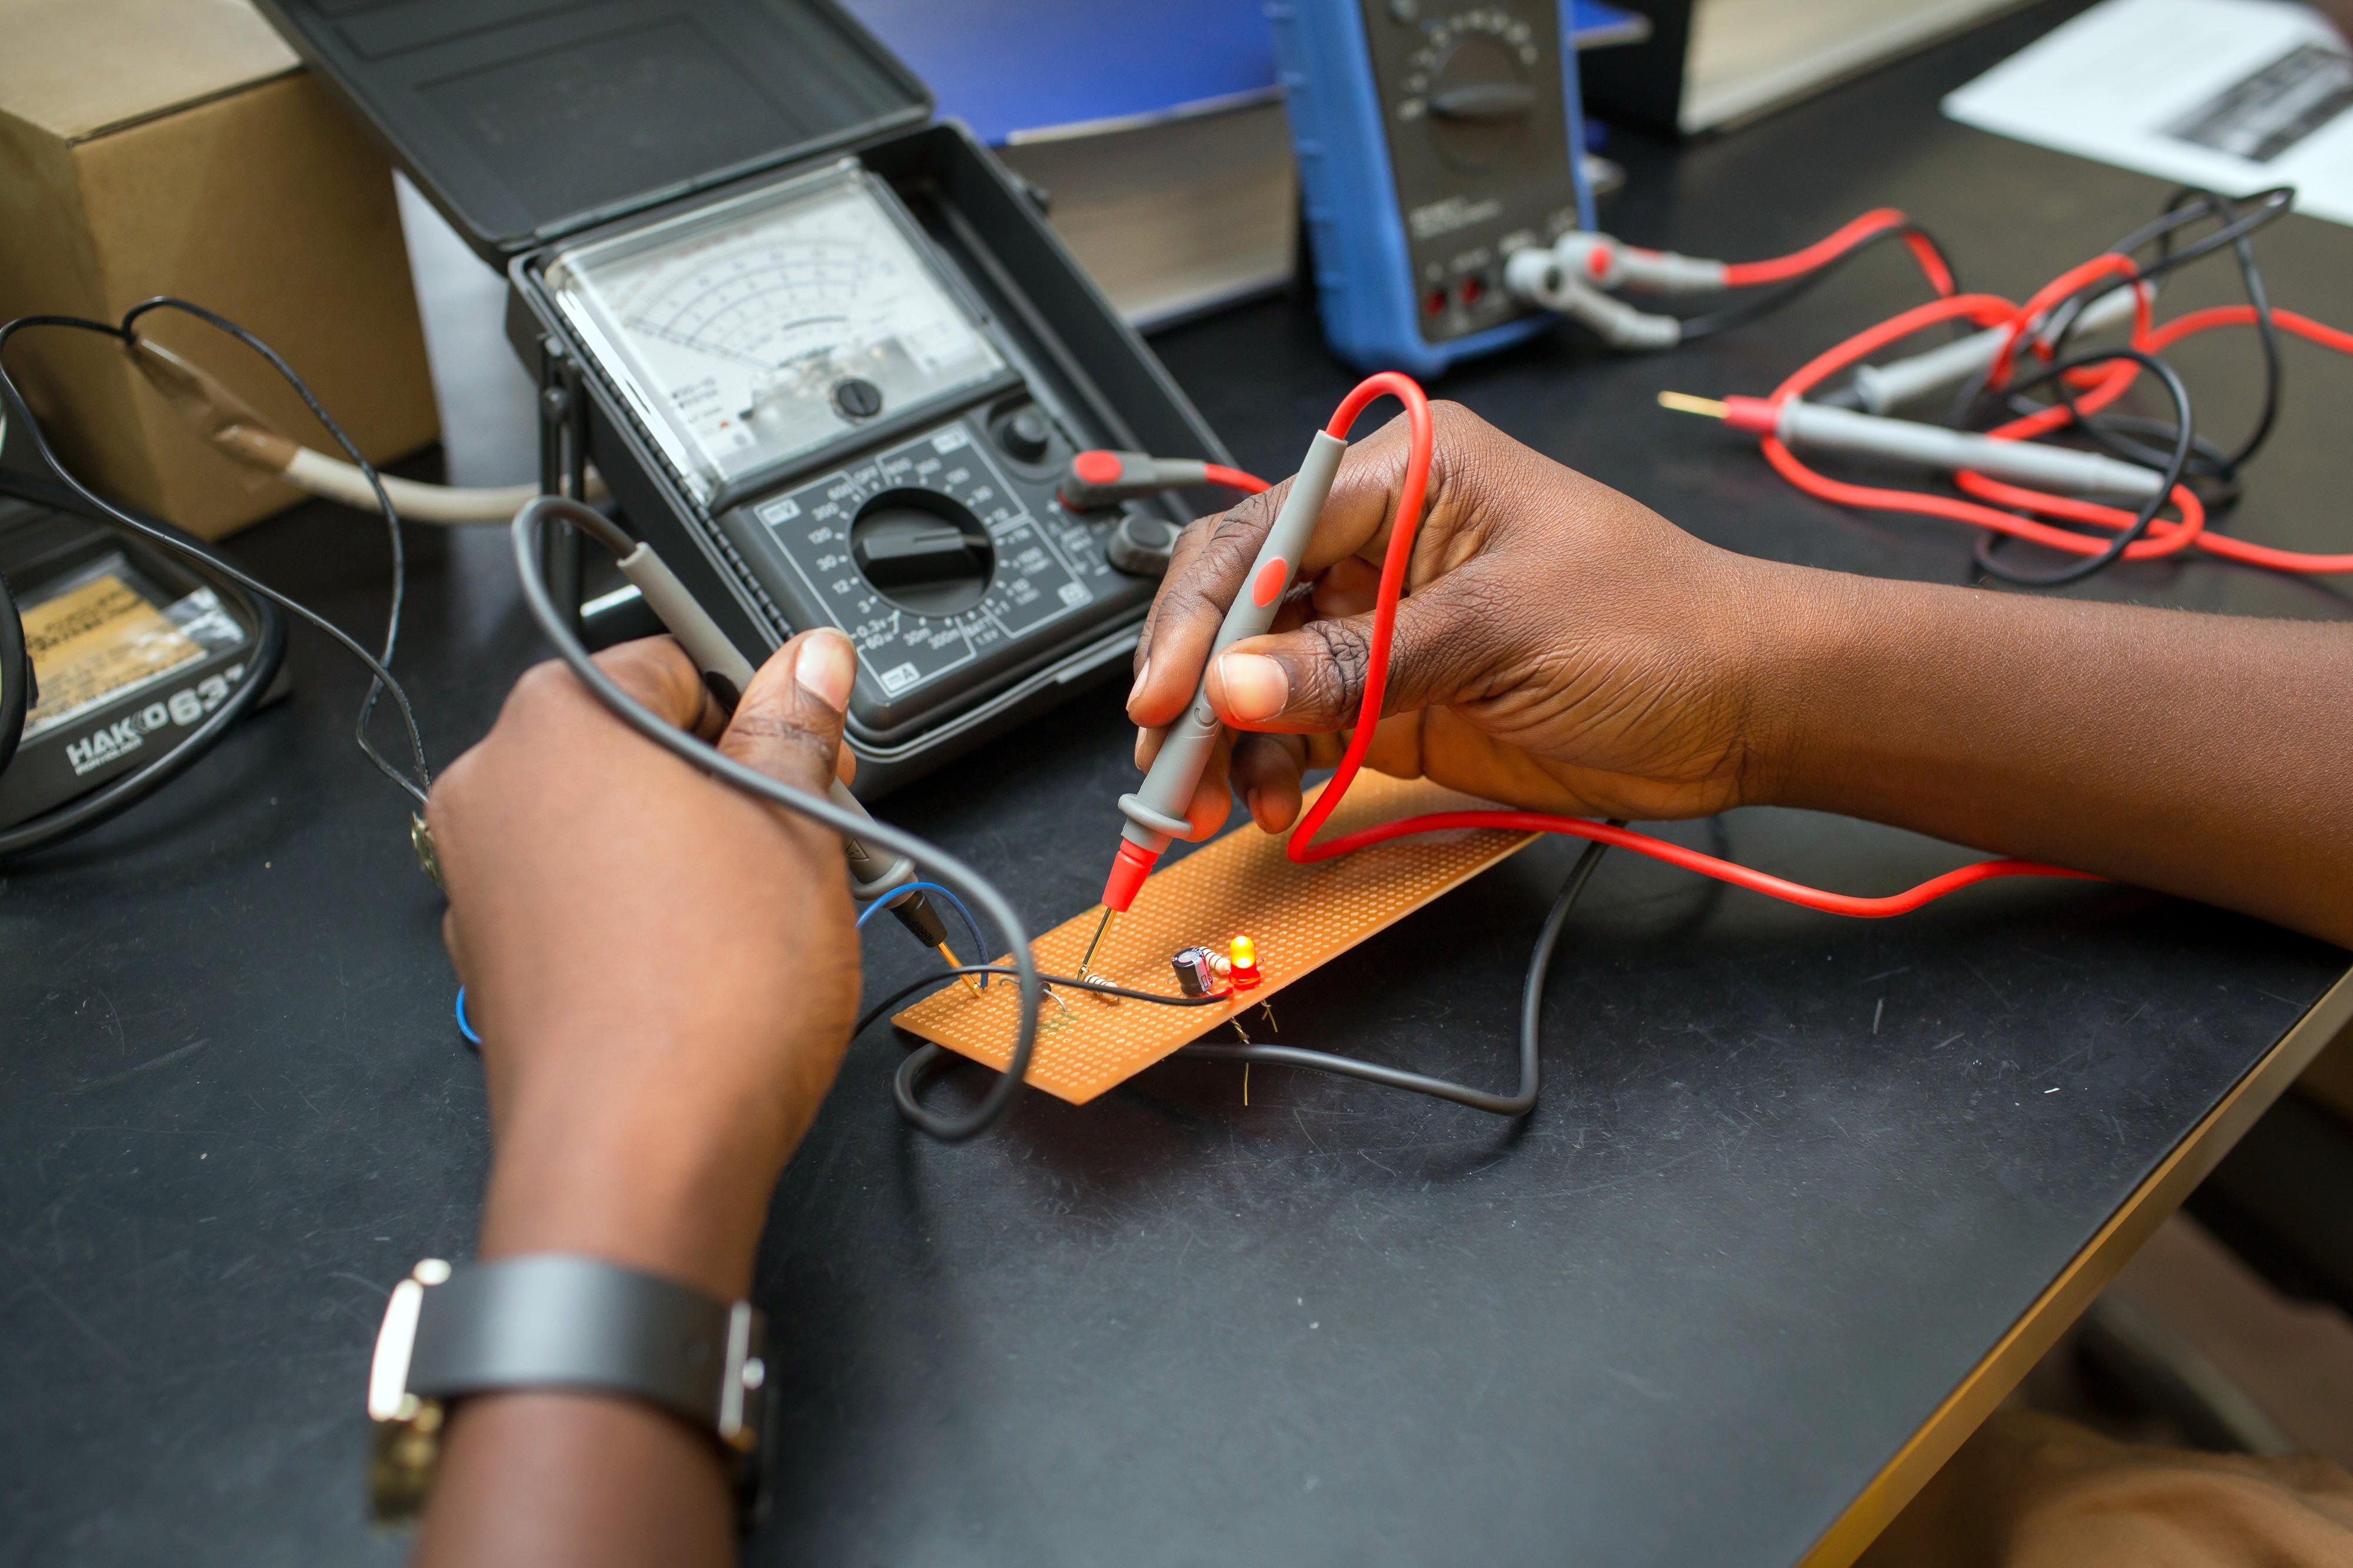 The Girls Vocational Training Institute in Accra (Ghana) trains girls in electrical engineering.